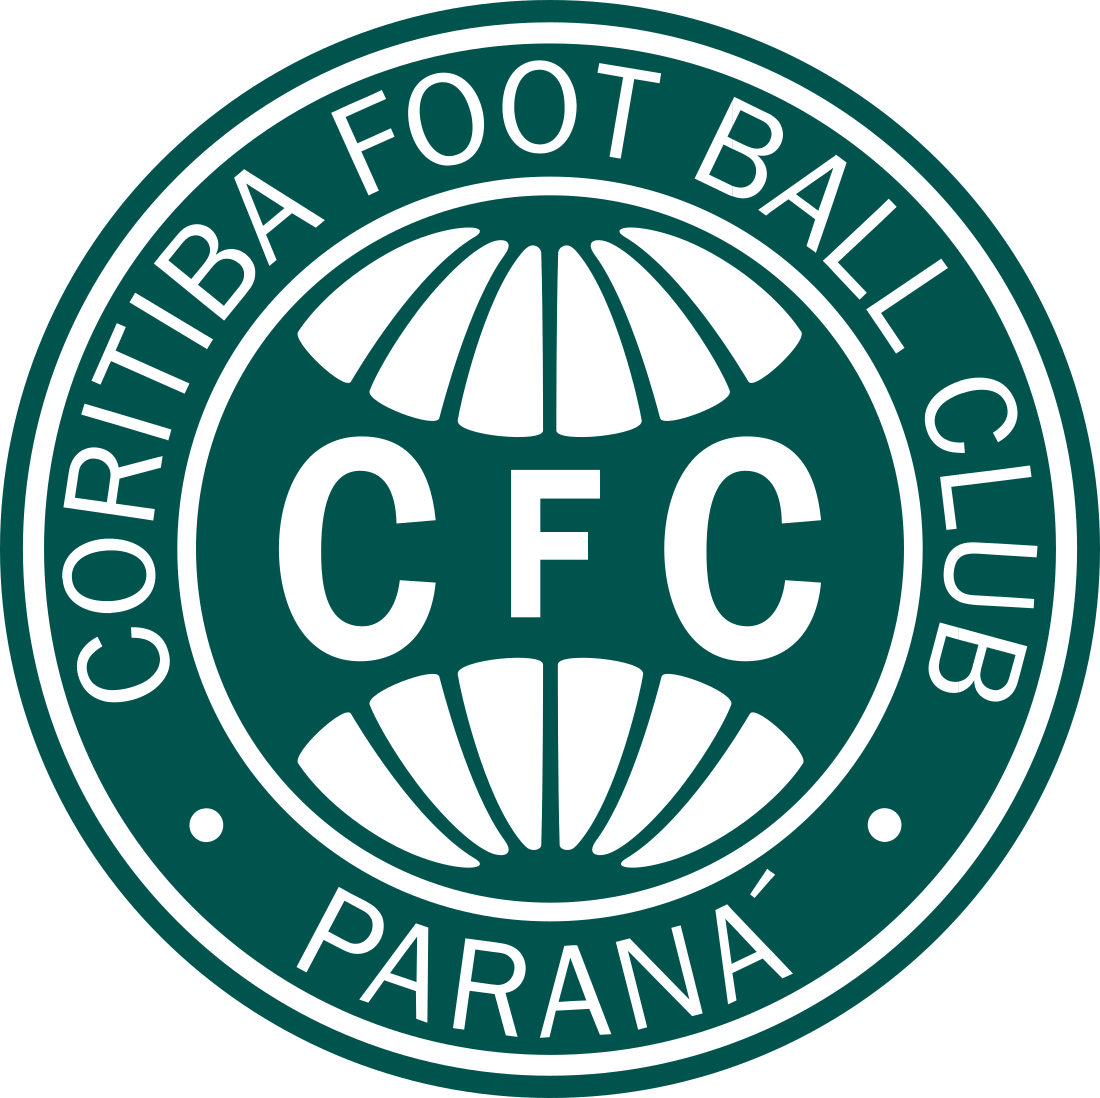 Hino do Coritiba Foot Ball Club em mp3 para download.